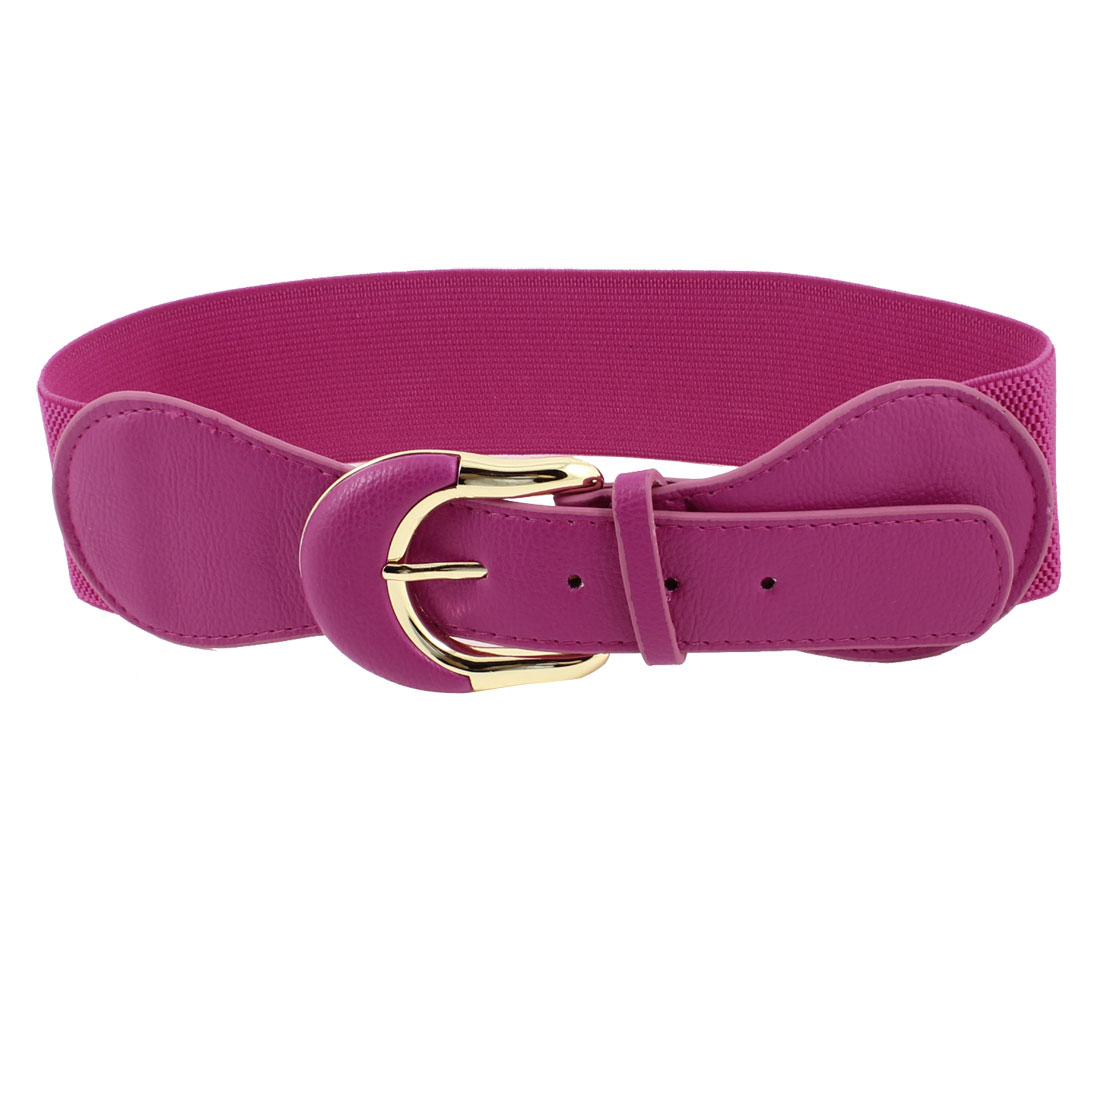 Faux Leather Single Prong Buckle Stretchy Waist Belt Fuchsia for Women